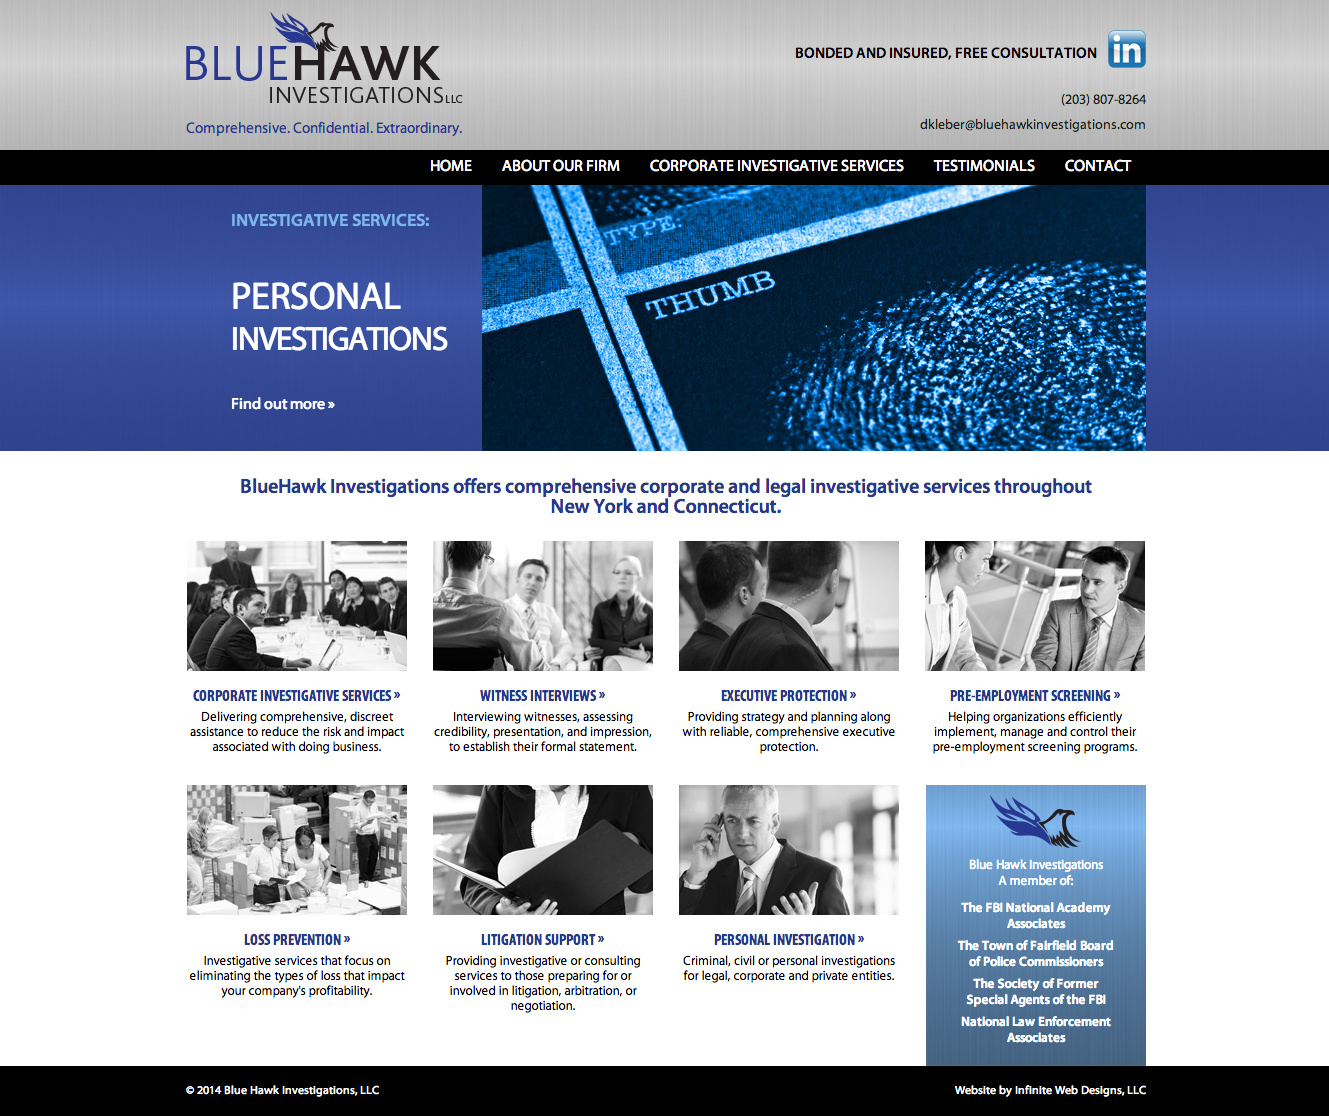 Bluehawk Investigations